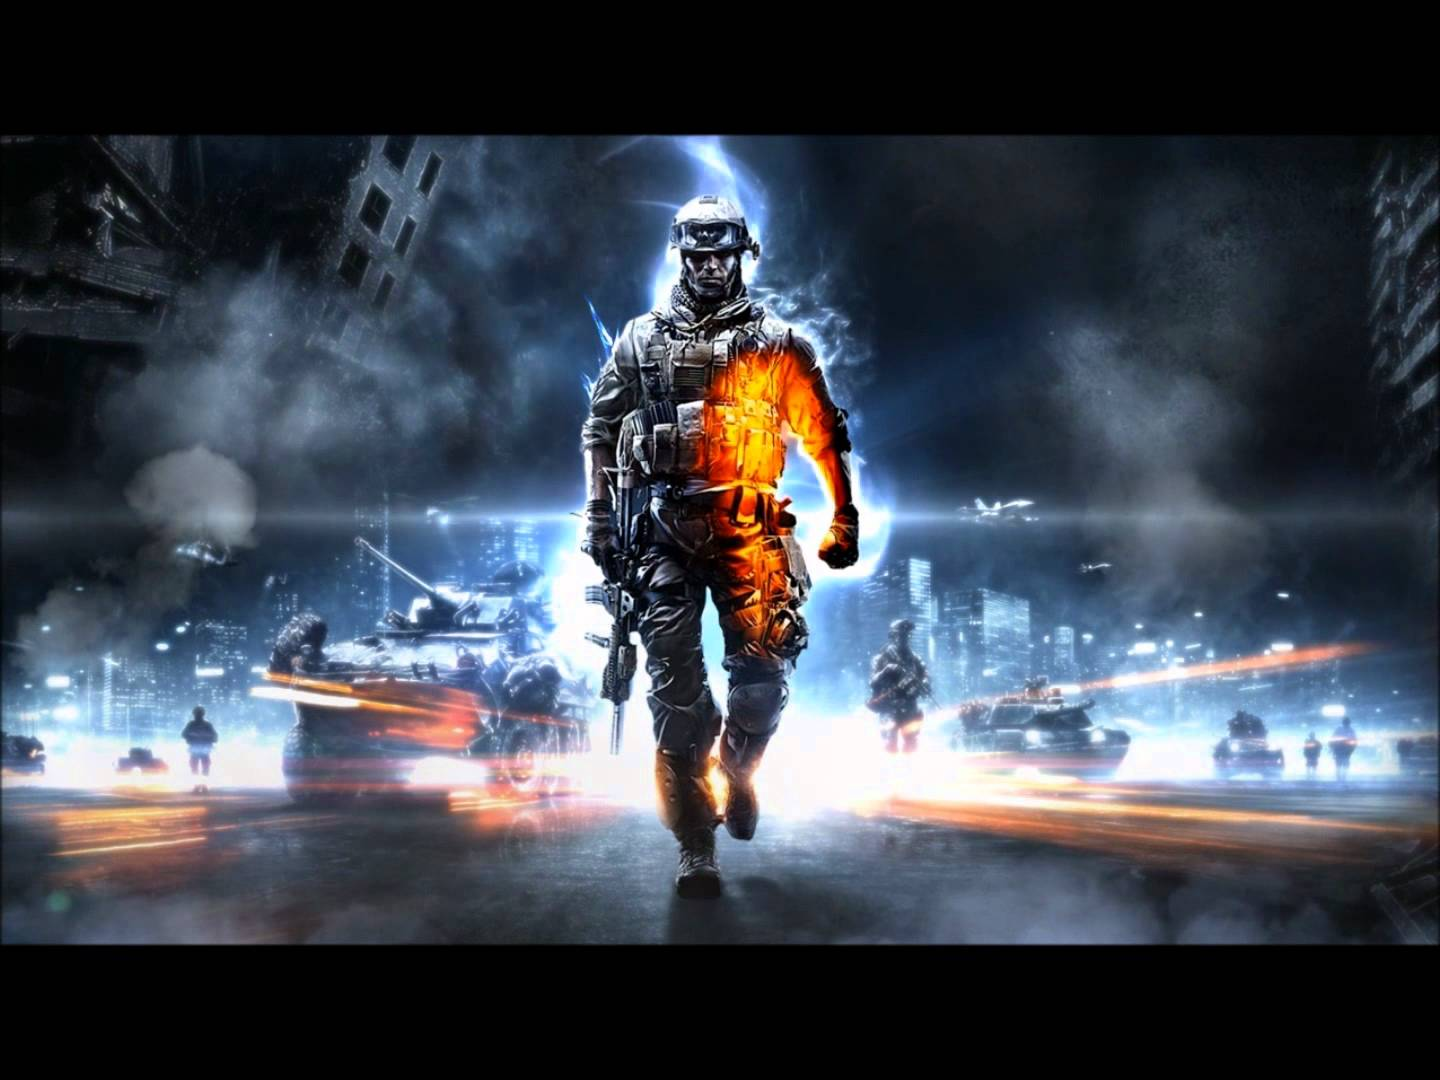 1440x1080px battlefield 4 wallpaper 1080p - wallpapersafari